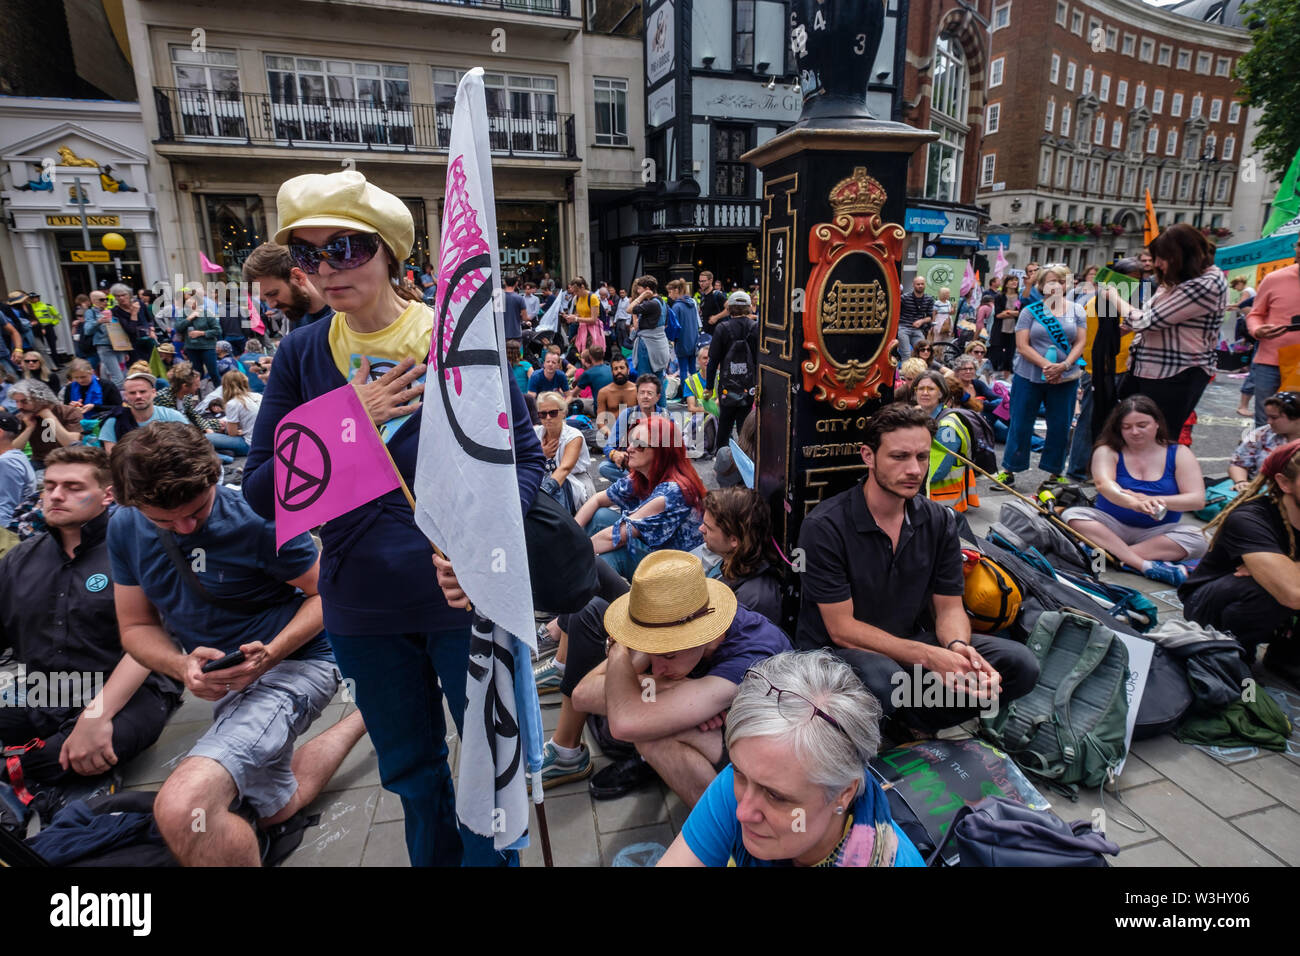 London, UK. 15th July, 2019. People watch a ceremony as Extinction Rebellion begins another series of protests in five major cities against the criminal inaction by the government on climate and ecological collapse. The protesters brought a yacht named after Polly Higgins who fought for years for an Ecocide Law to the Royal Courts of Justice and continued her fight blocking the Strand all day with performances, discussions, speeches, music and ceremonies in front of the yacht. Credit: Peter Marshall/Alamy Live News - Stock Image